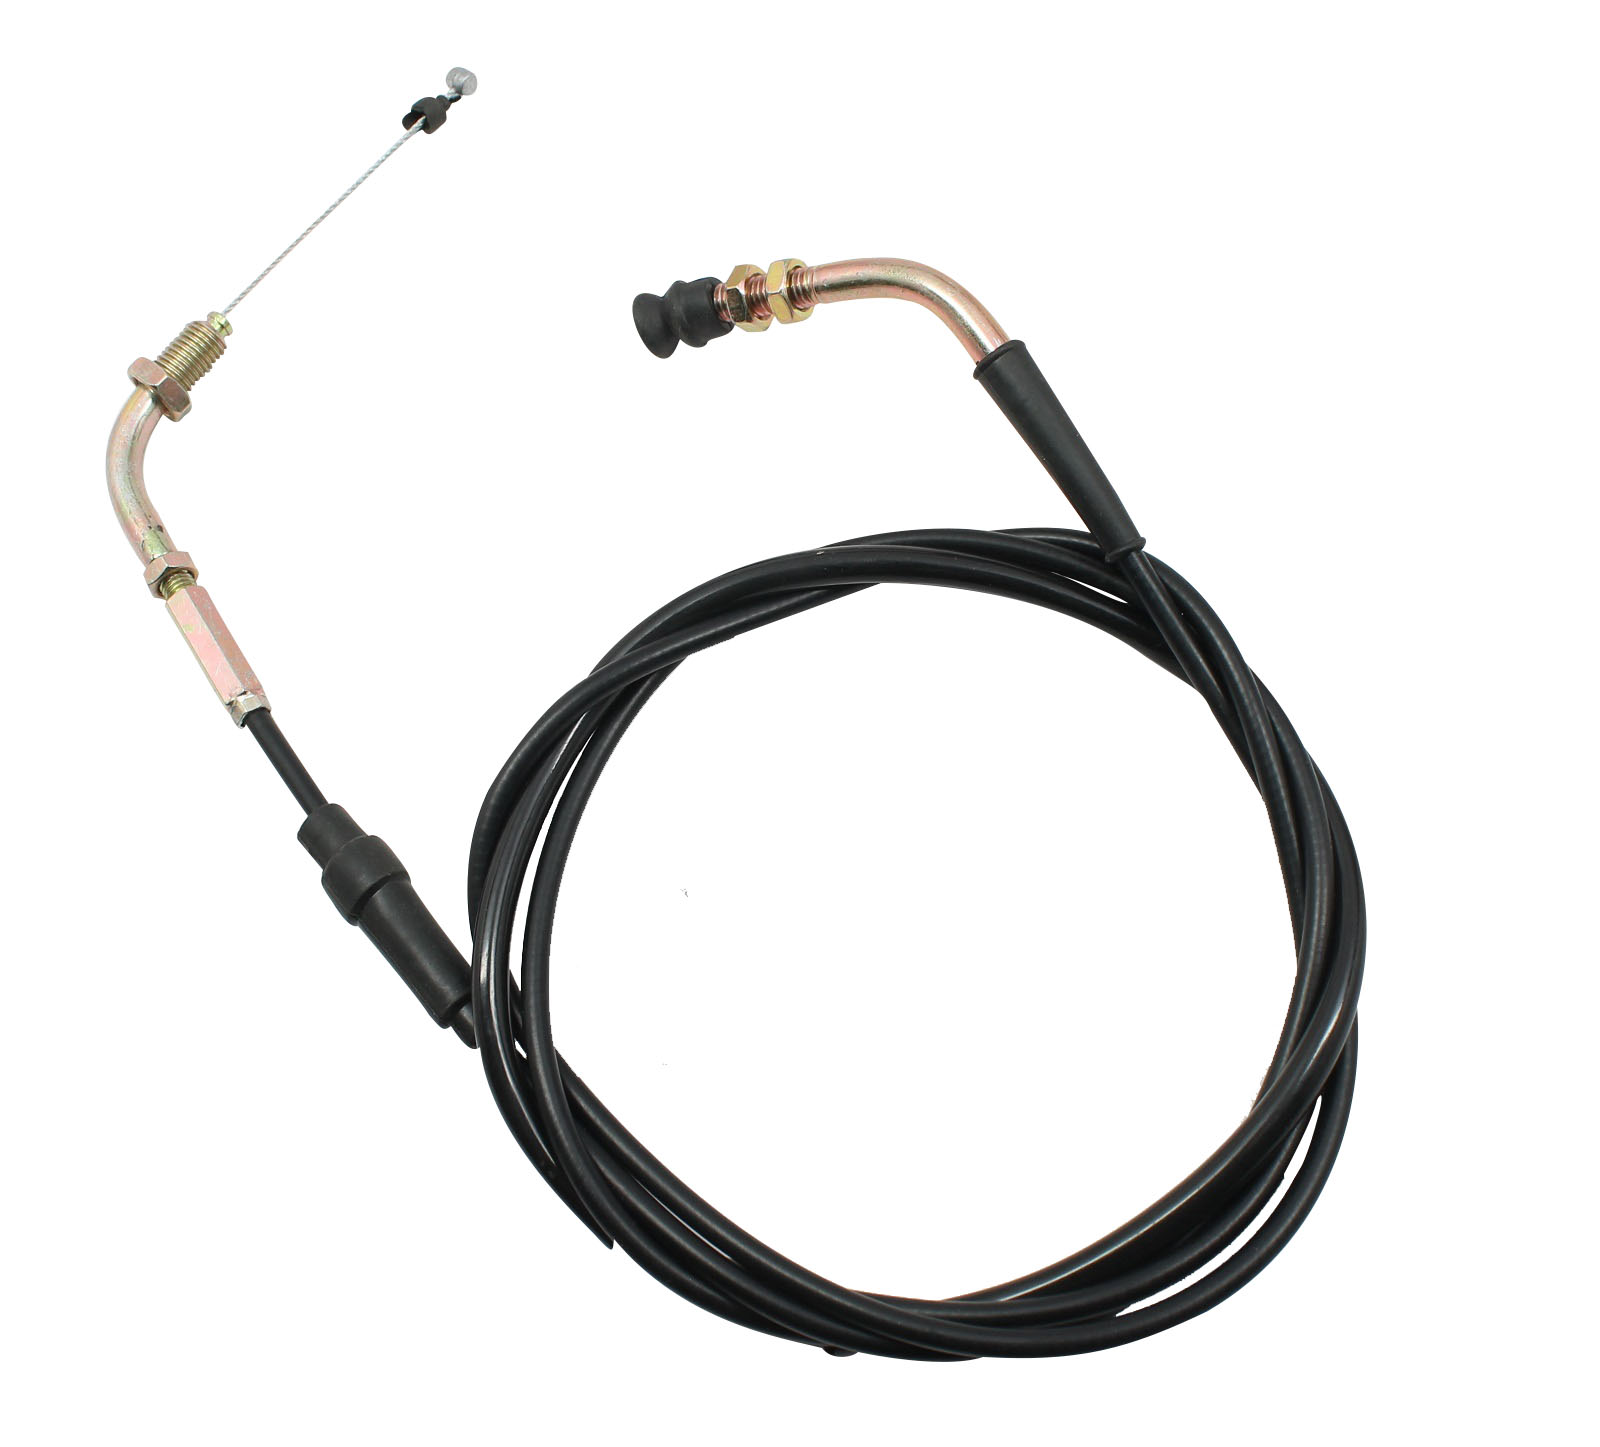 81 Inch Throttle Cable Mc 08 50